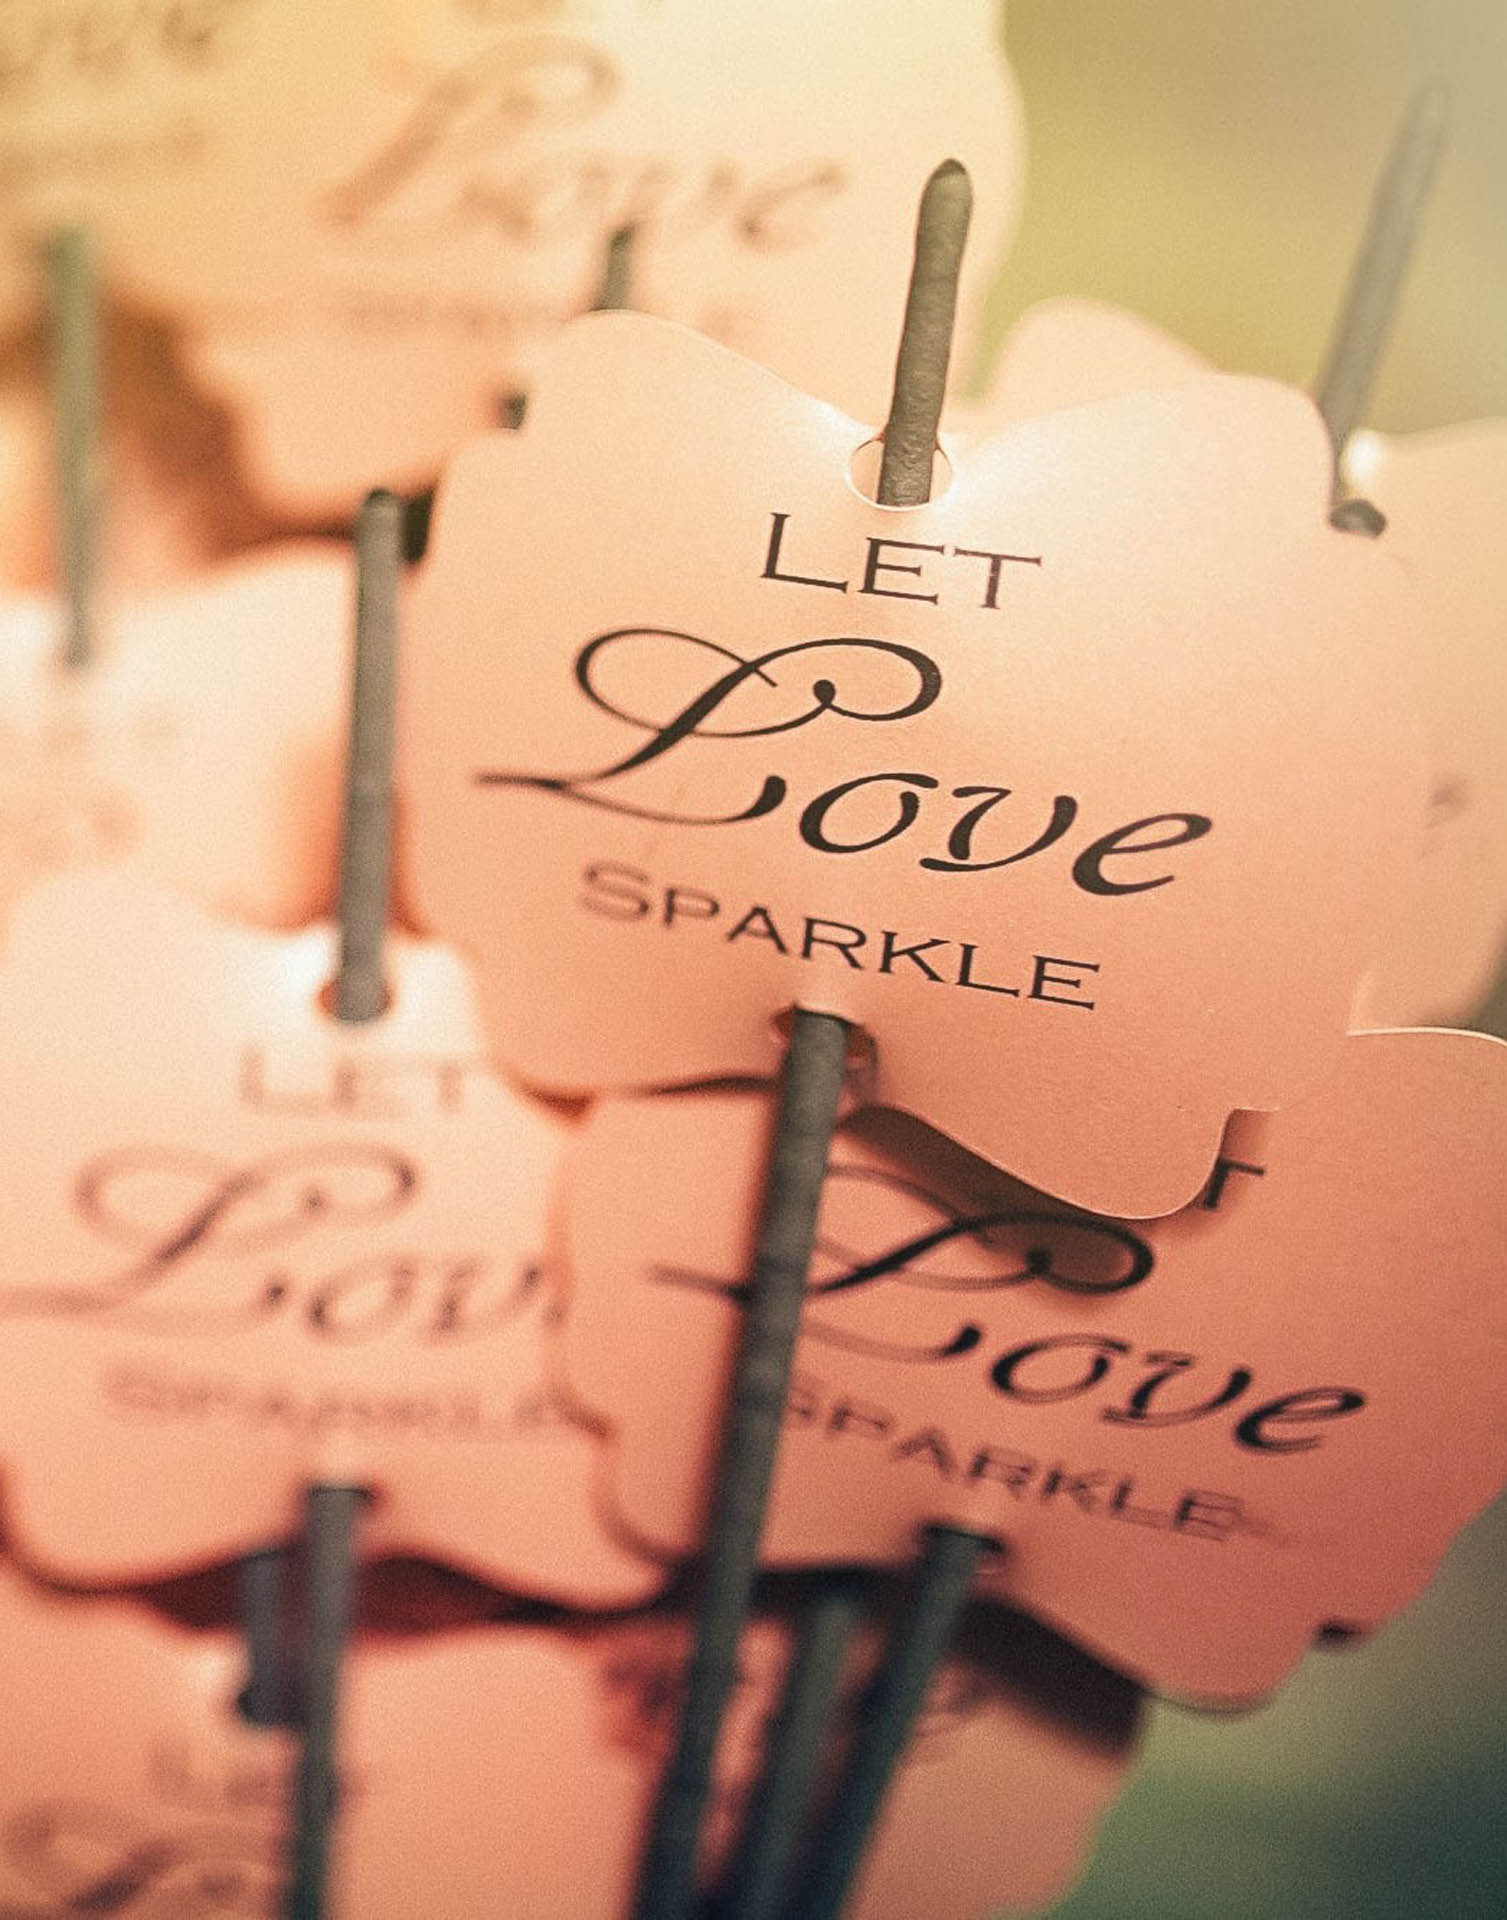 Love quote decor barin multivenues reception halls events - 1